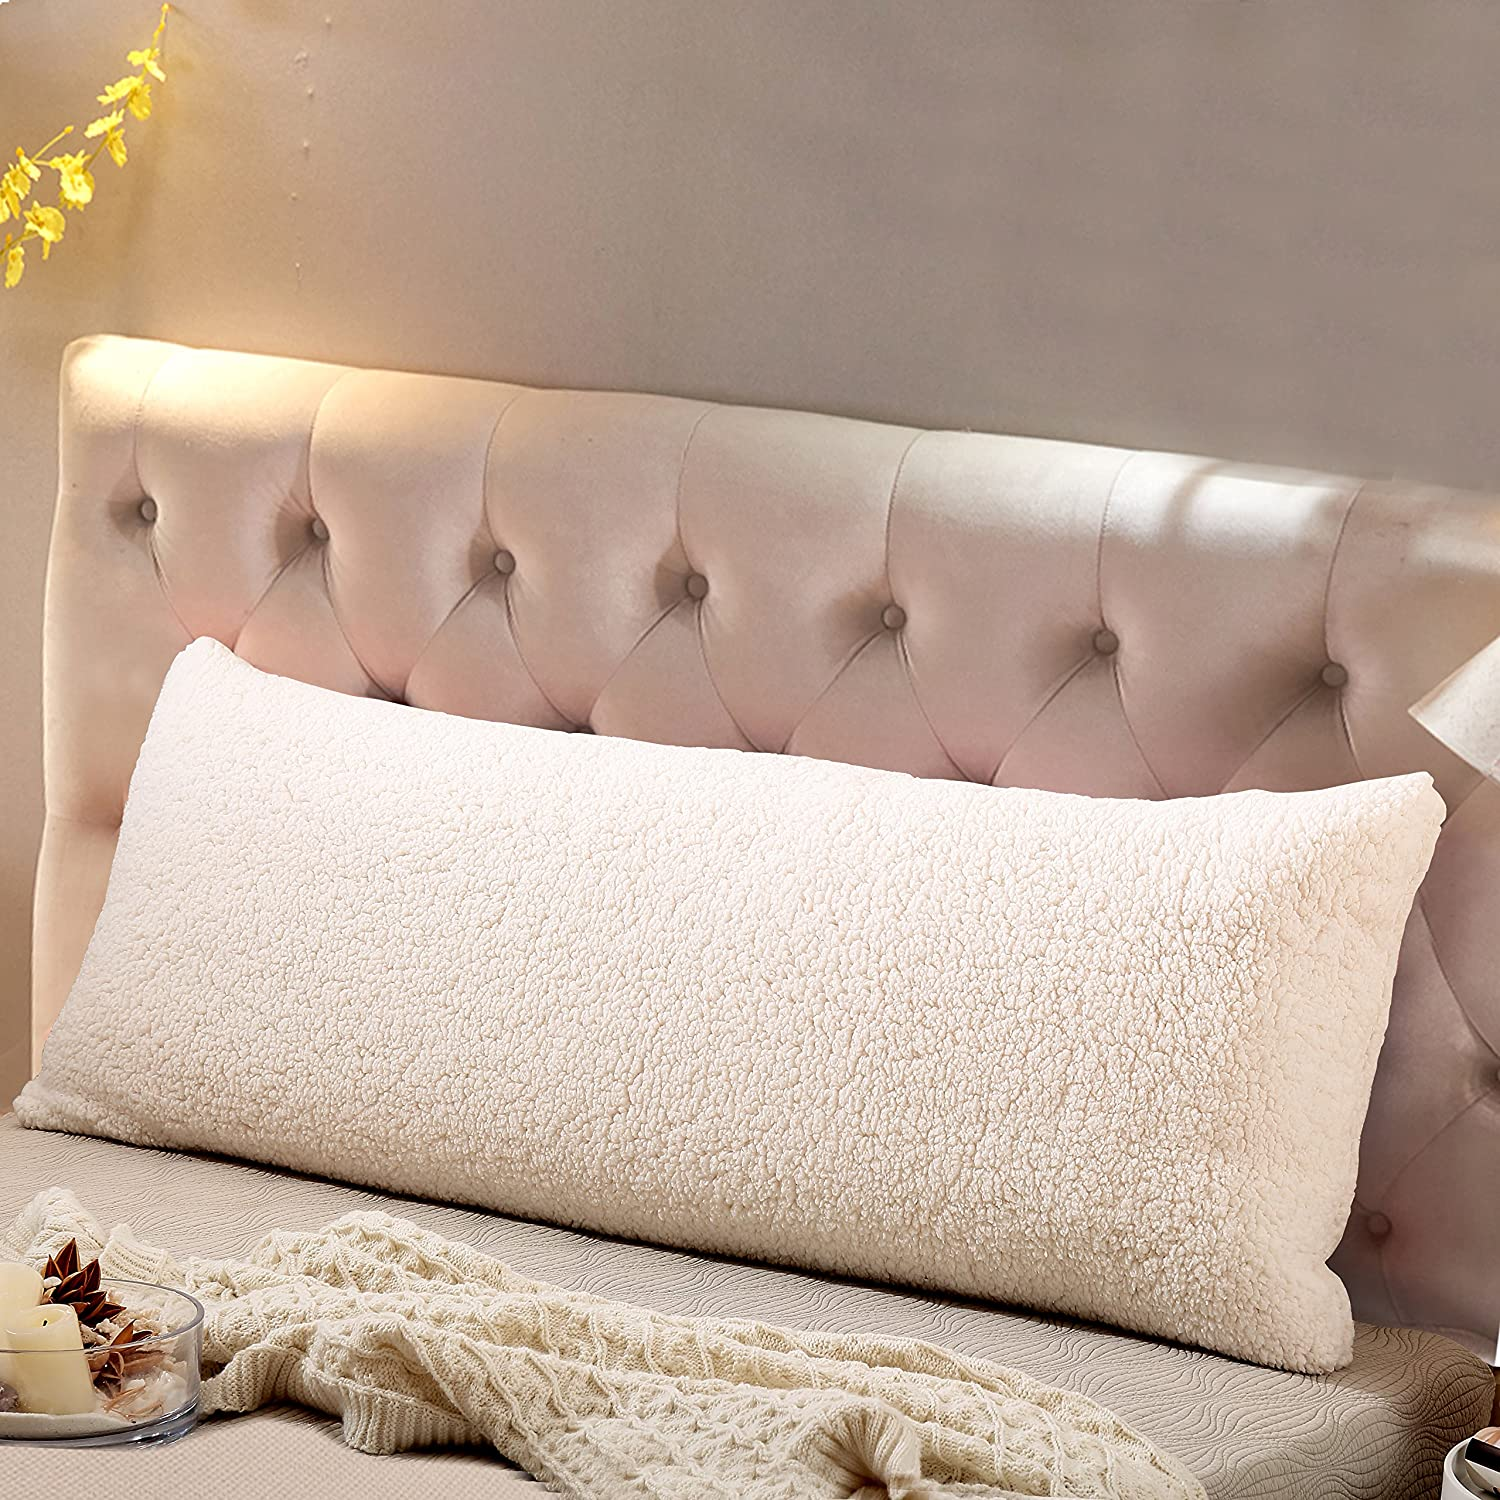 "Reafort Ultra Soft Sherpa Body Pillow Cover/Case with Zipper Closure Silver Grey 21""X54""(Cream, 21""X54"")"